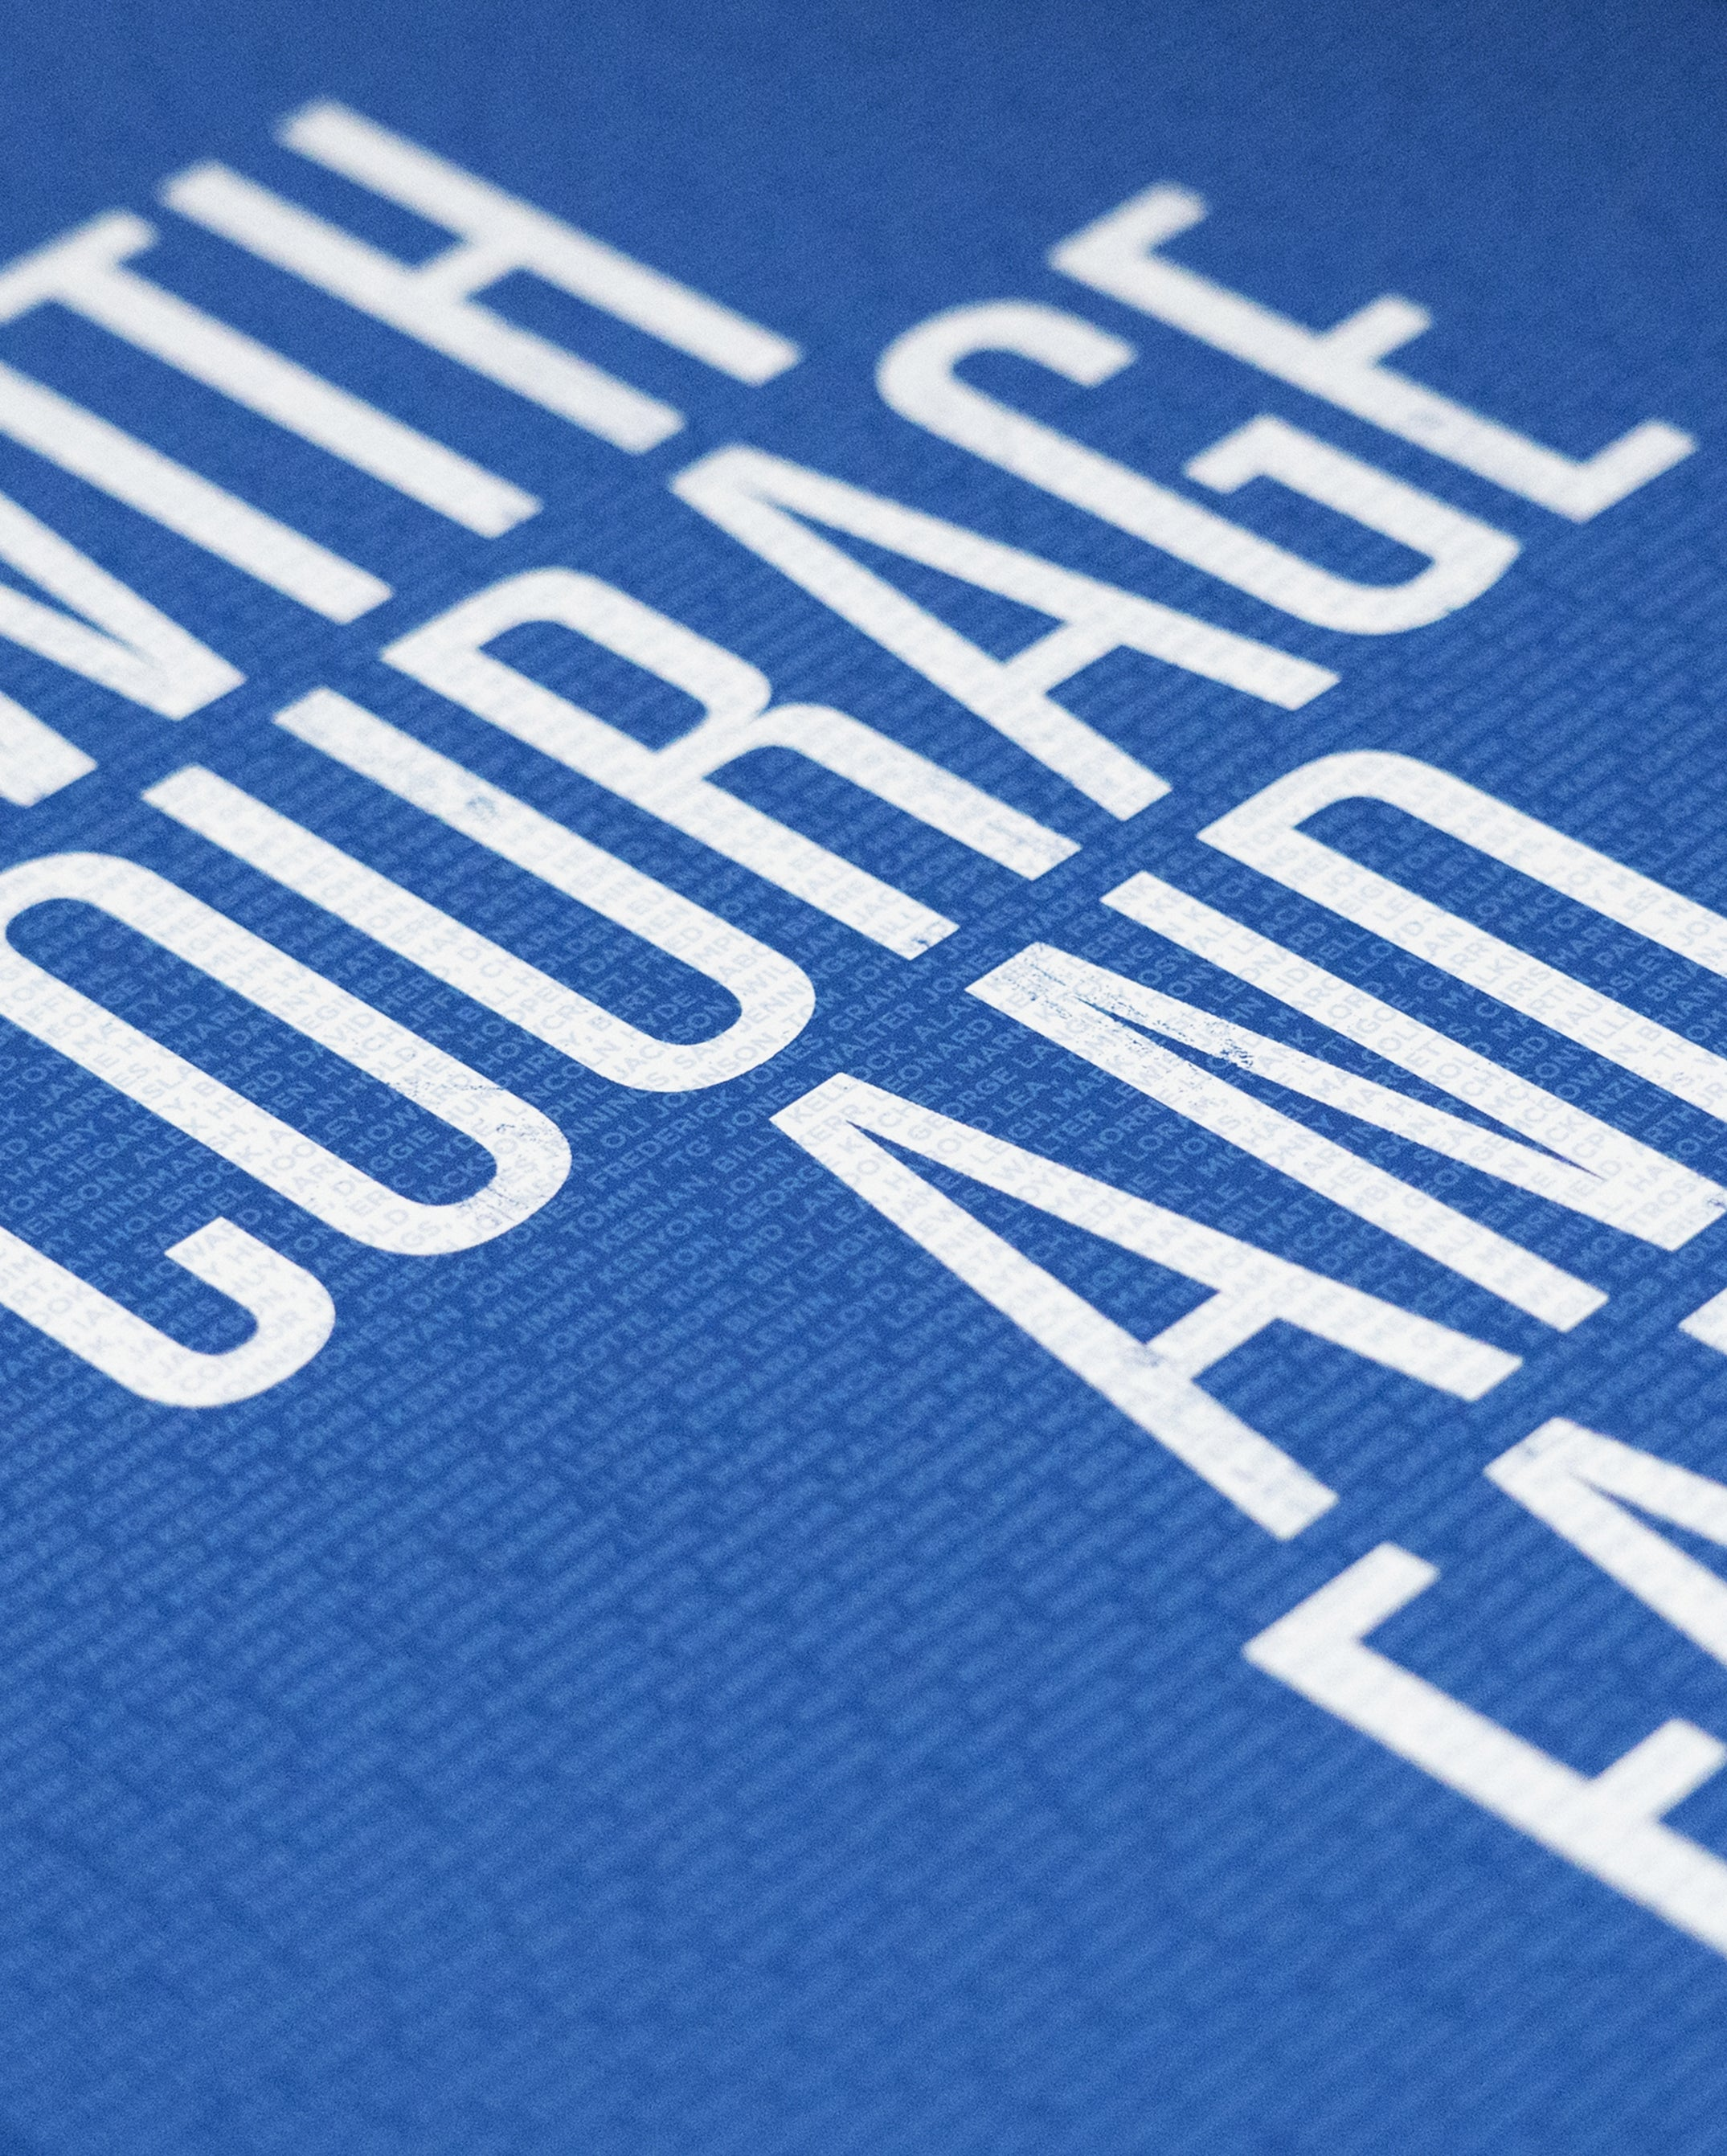 Club motto print – Stockport County